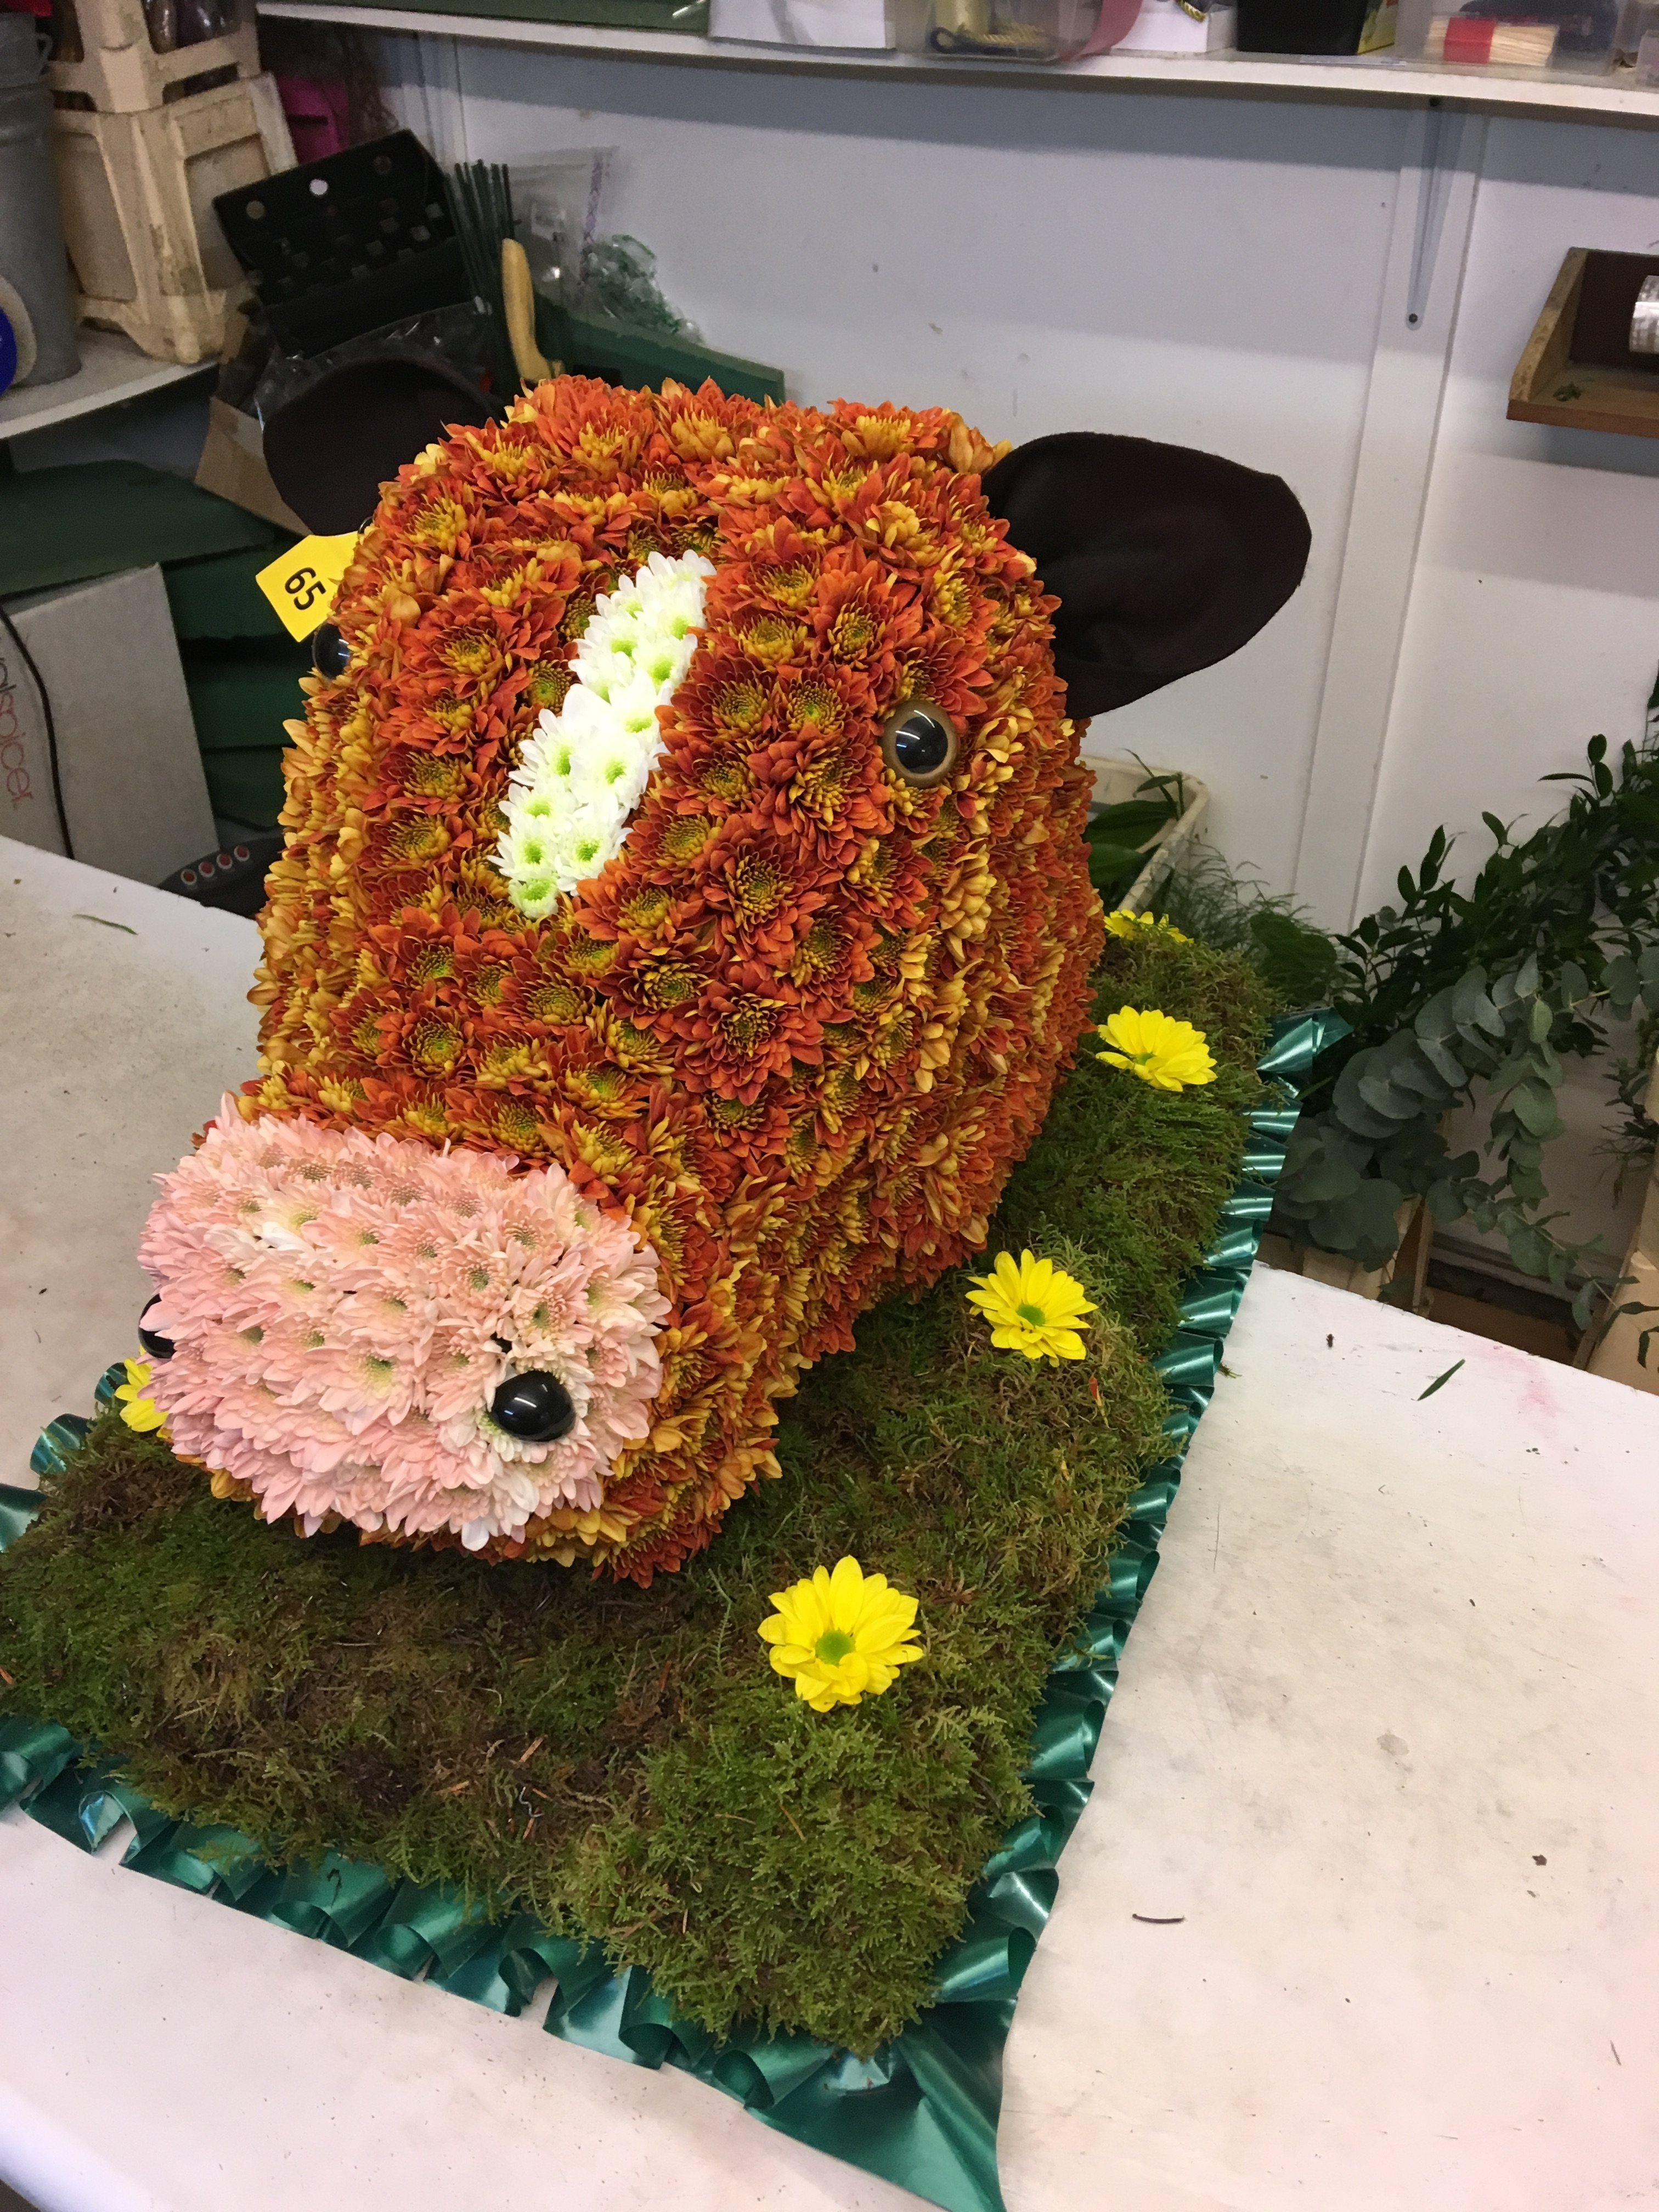 Cows Head made from flowers